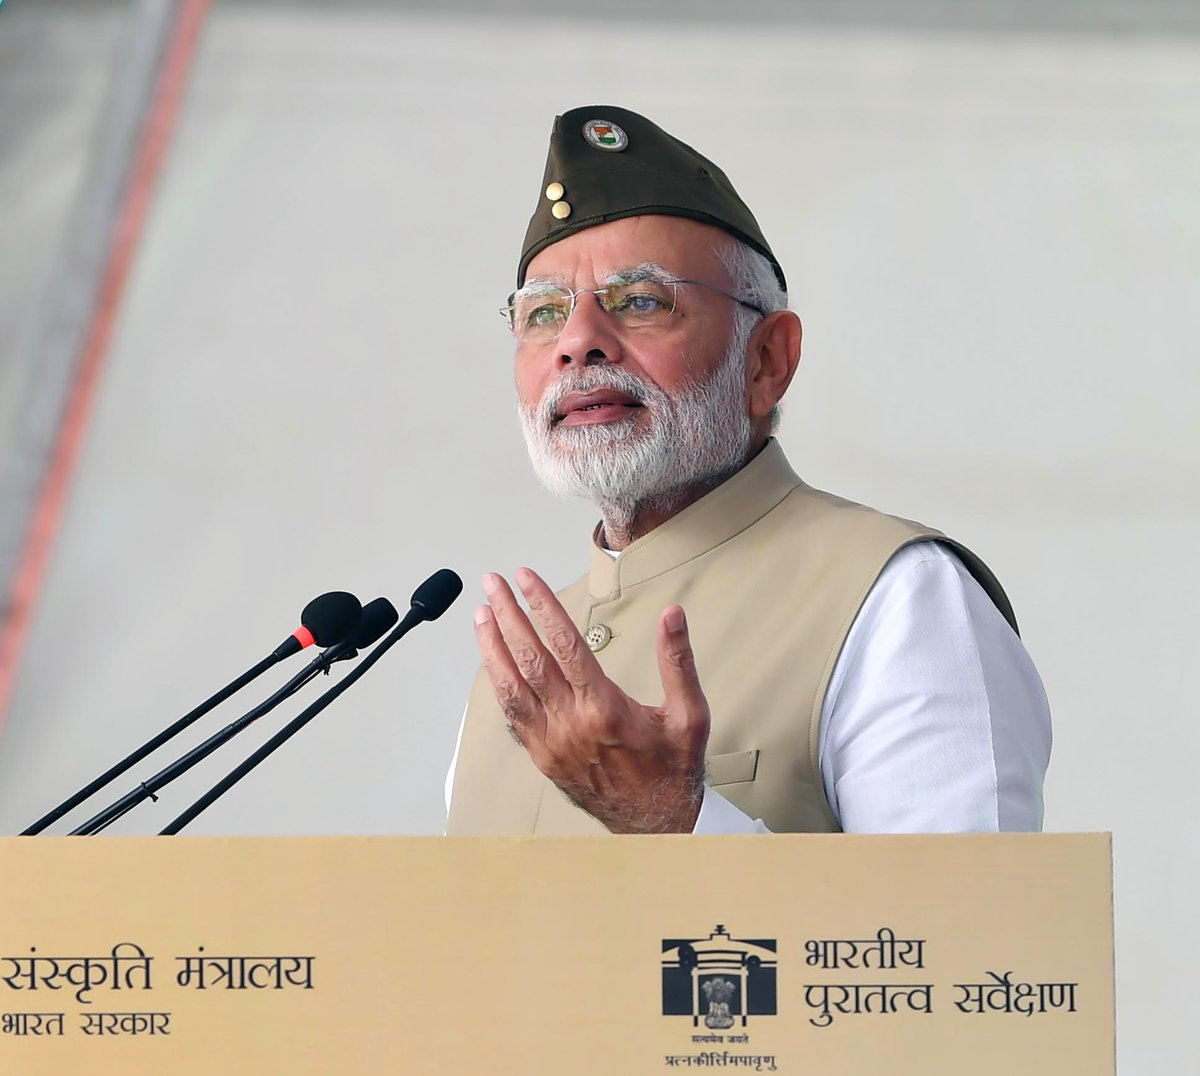 Indian forces are ready to face any challenges to protect the country: PM